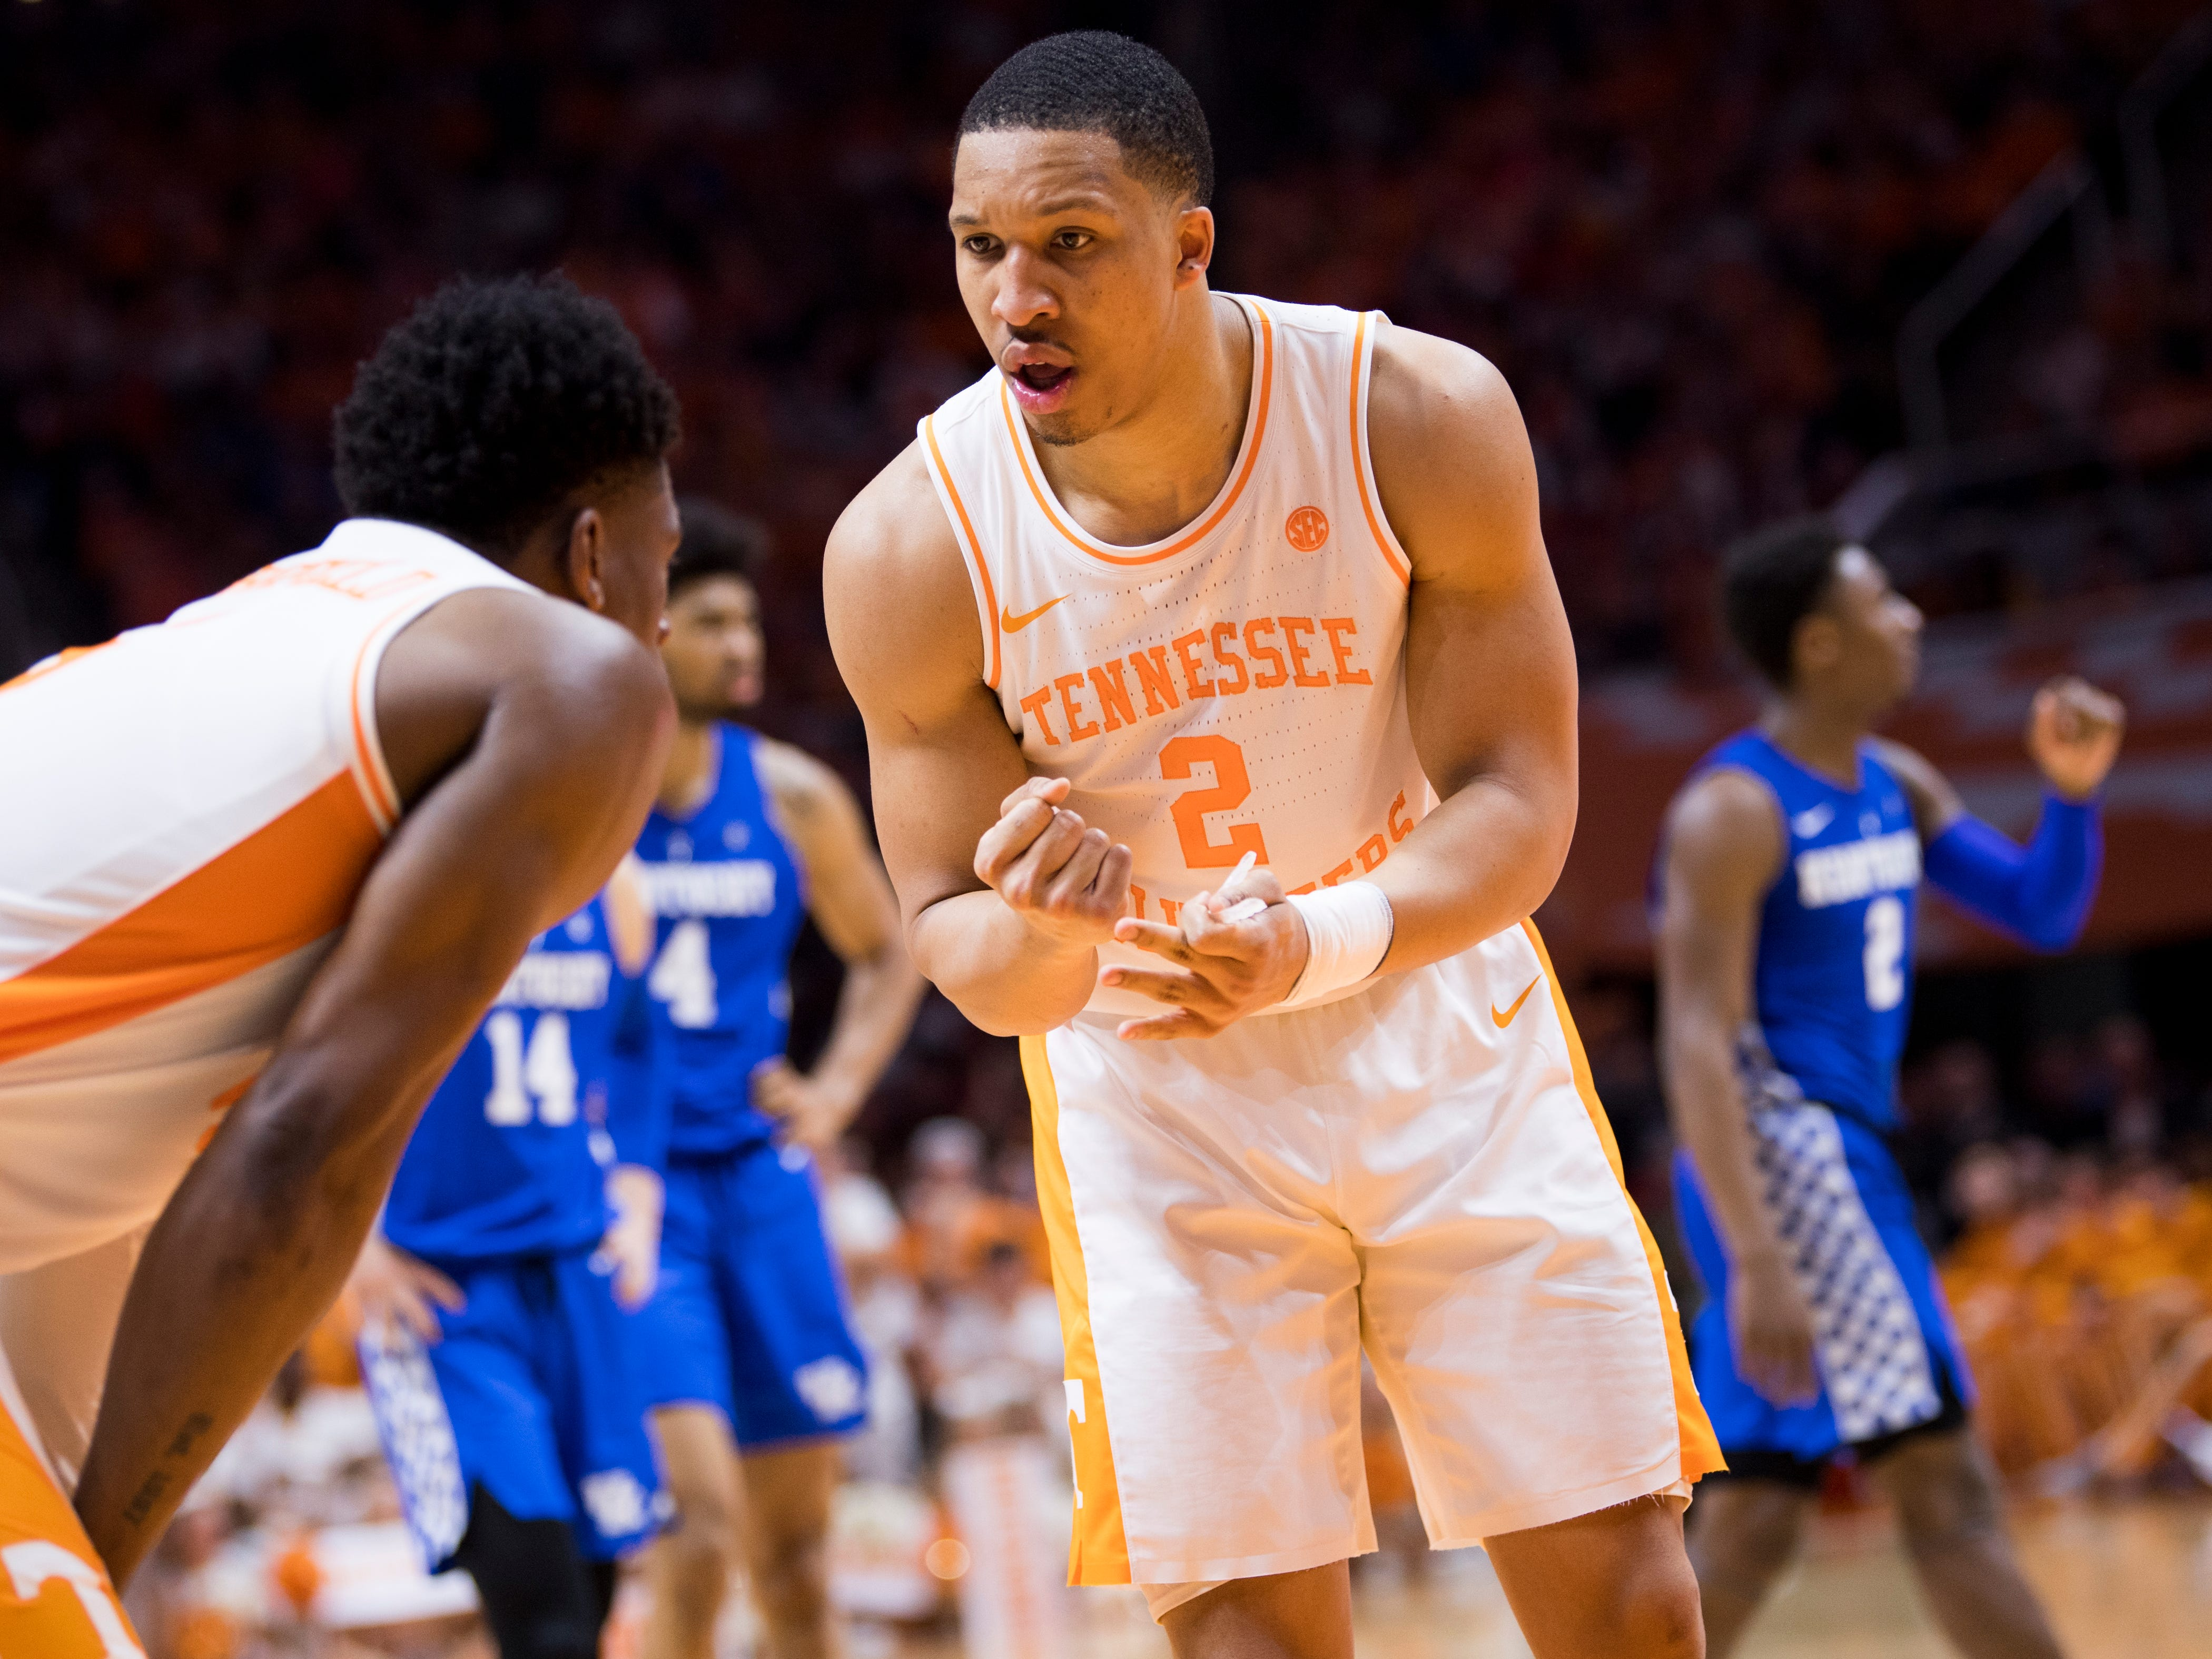 Tennessee forward Grant Williams (2) speaks with Tennessee guard Admiral Schofield (5) during Tennessee's home basketball game against Kentucky at Thompson-Boling Arena in Knoxville on Saturday, March 2, 2019.